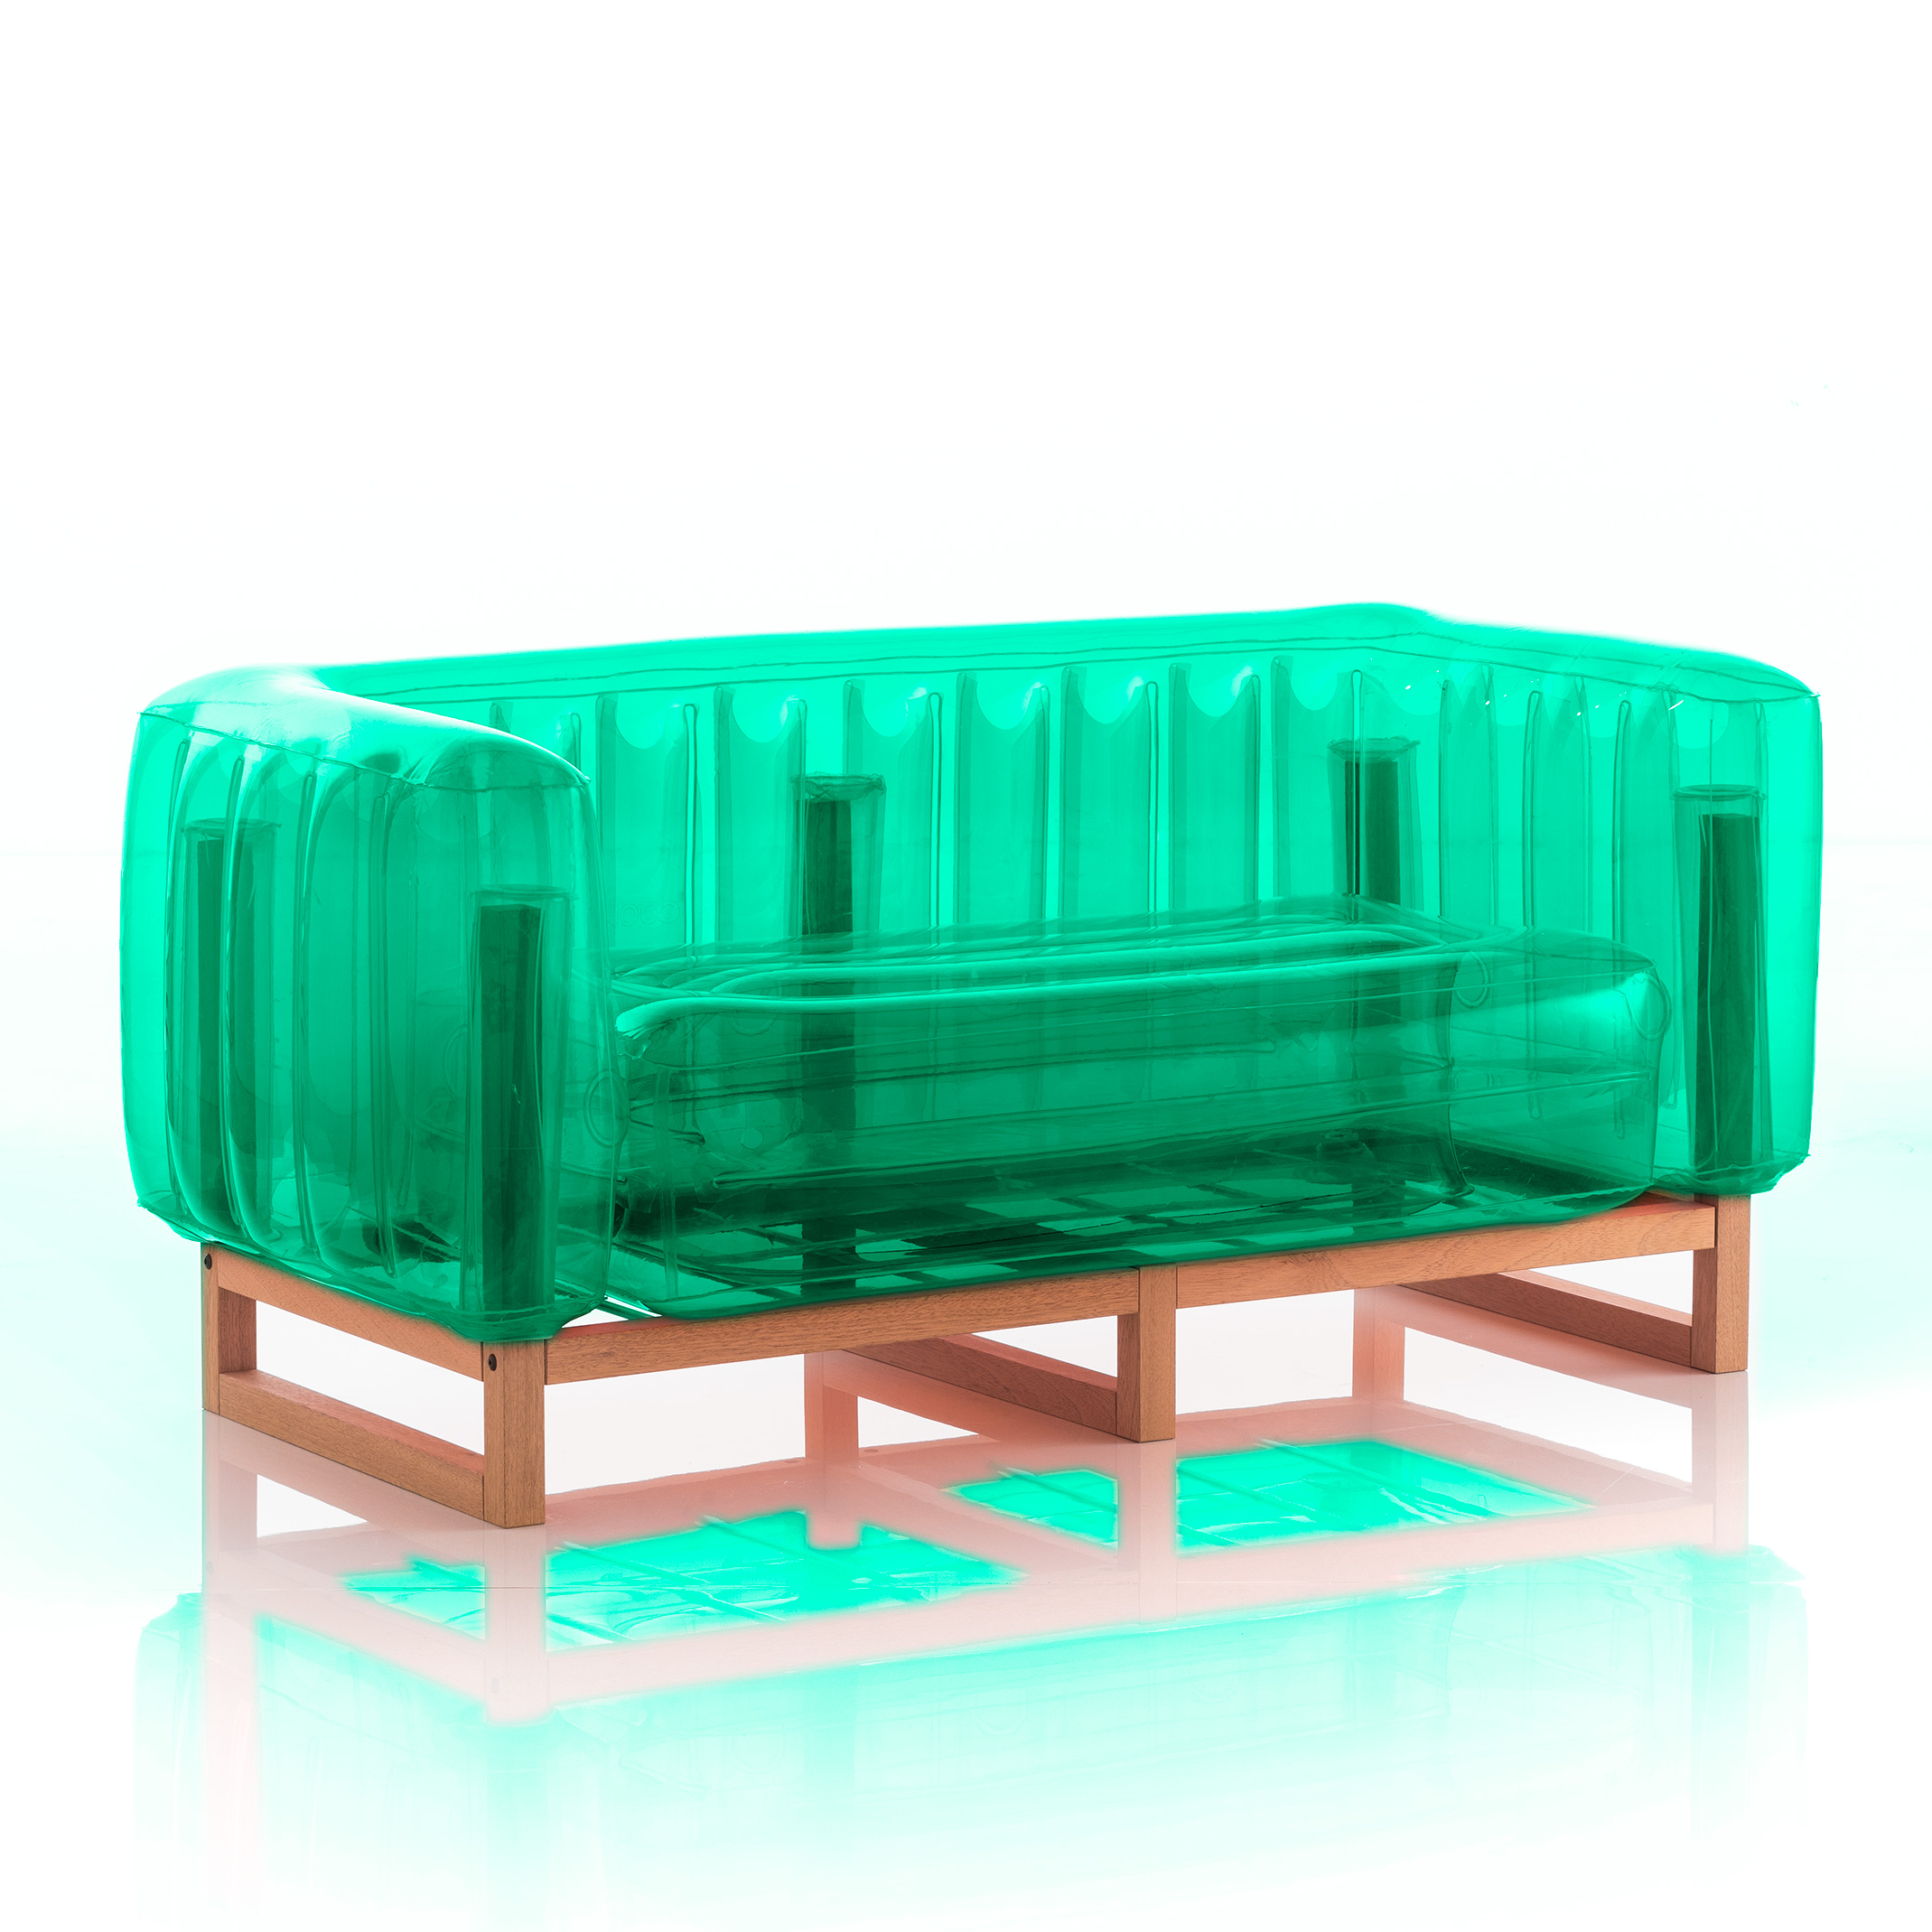 Canapé cadre bois assise thermoplastique vert crystal